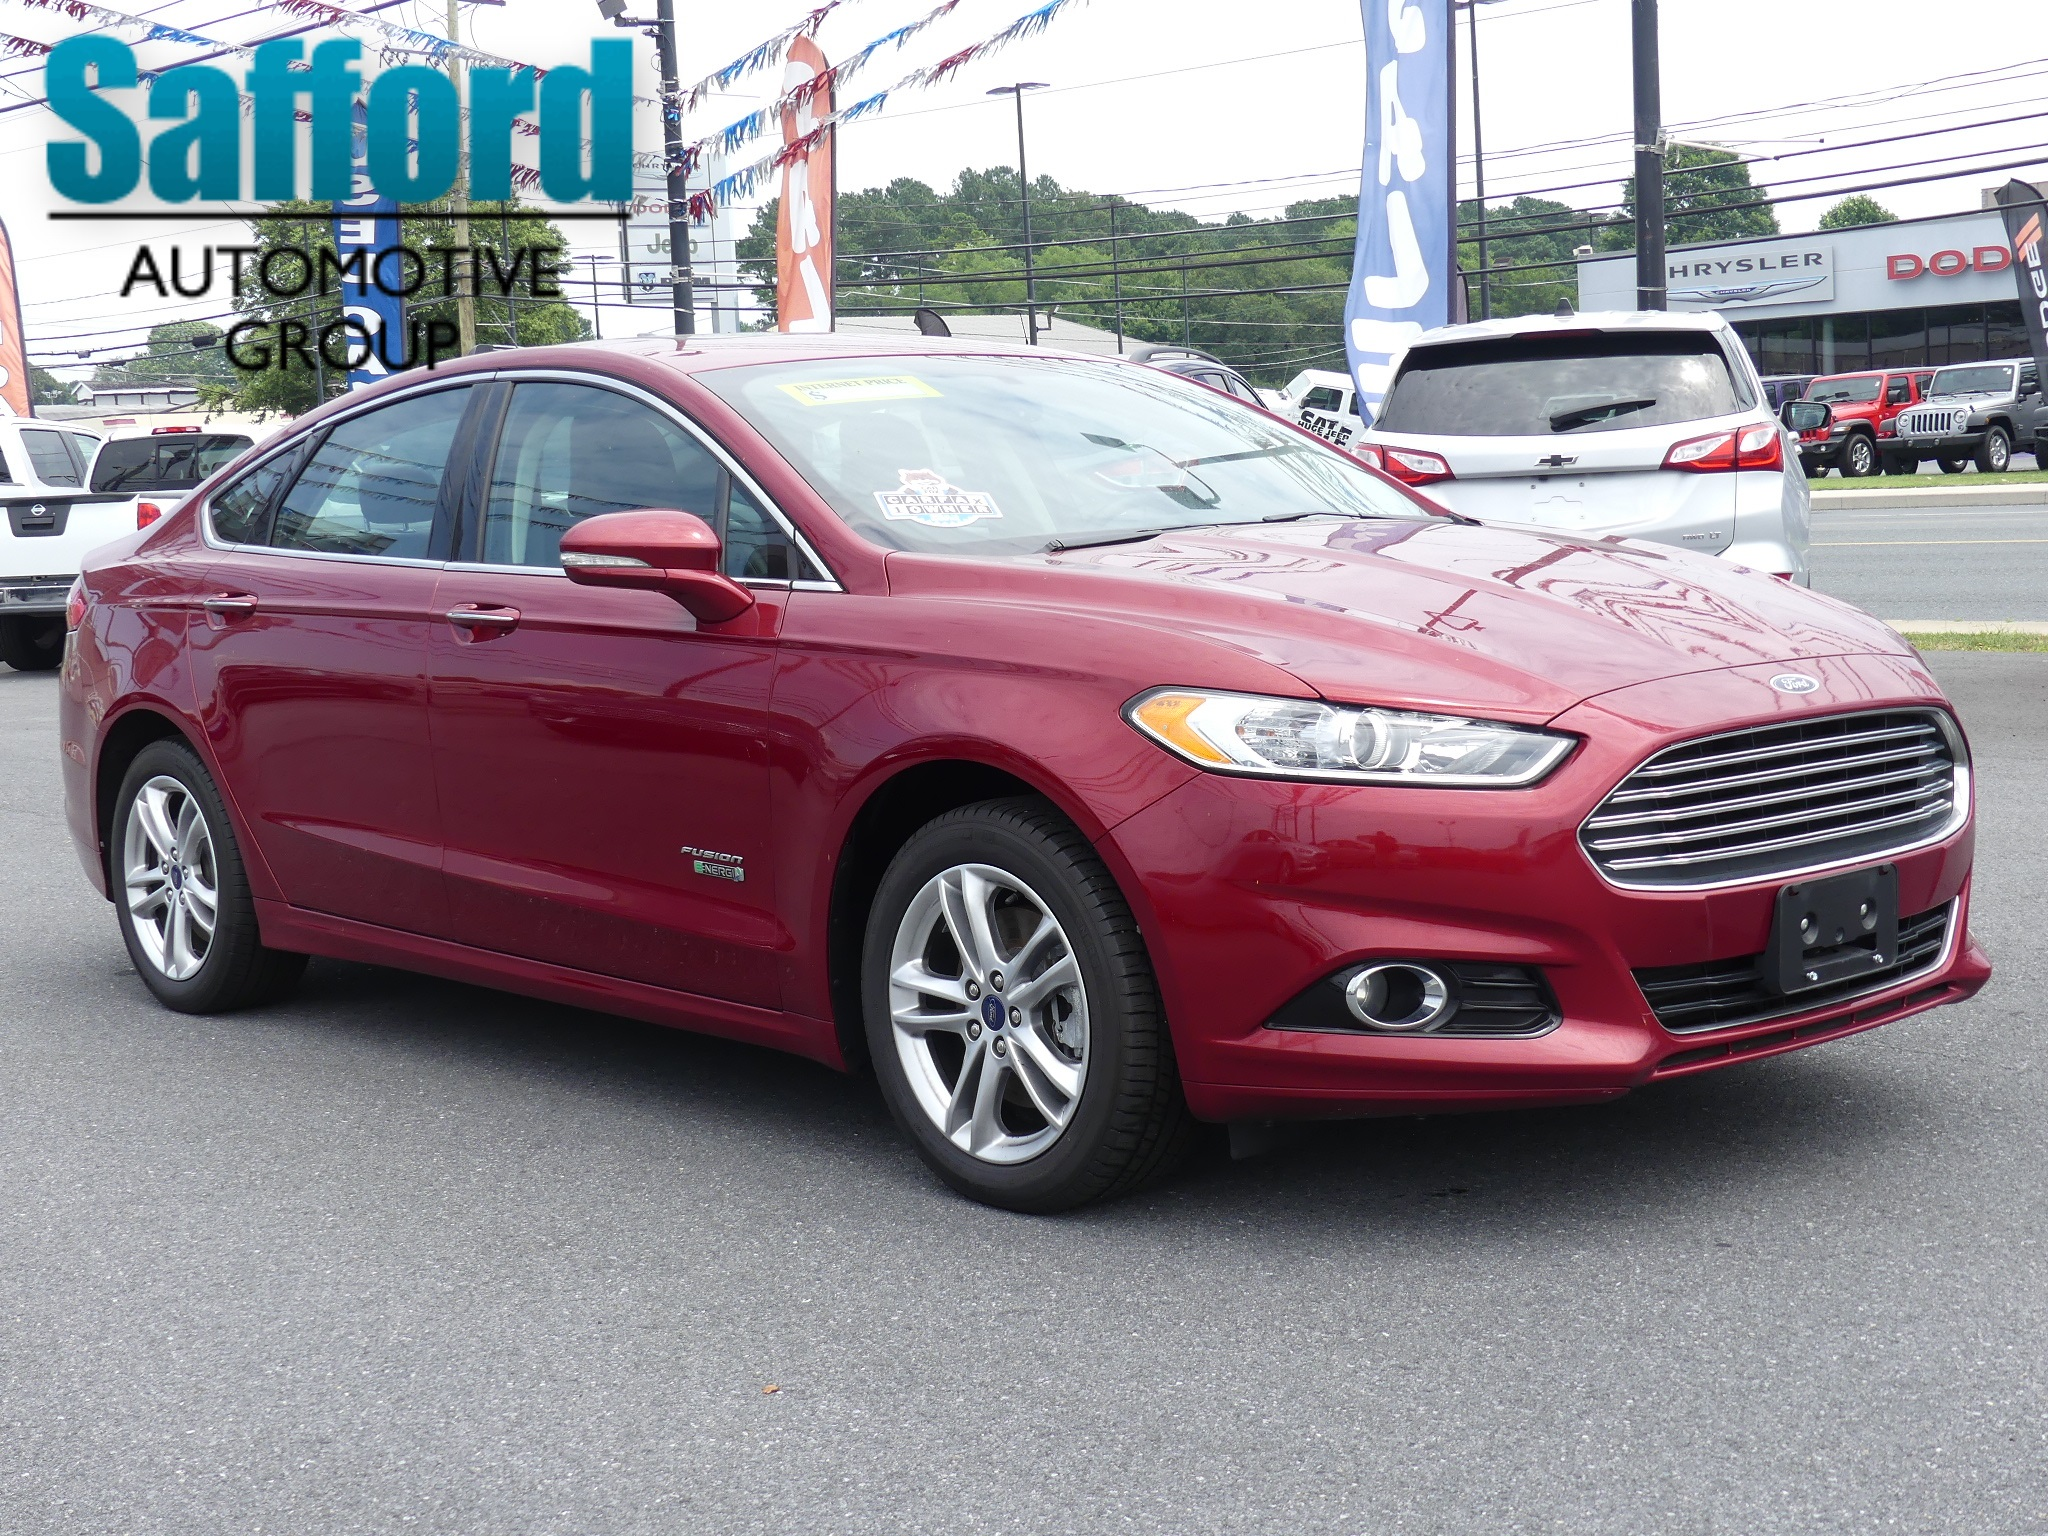 Ford Fusion: Towing the vehicle on four wheels